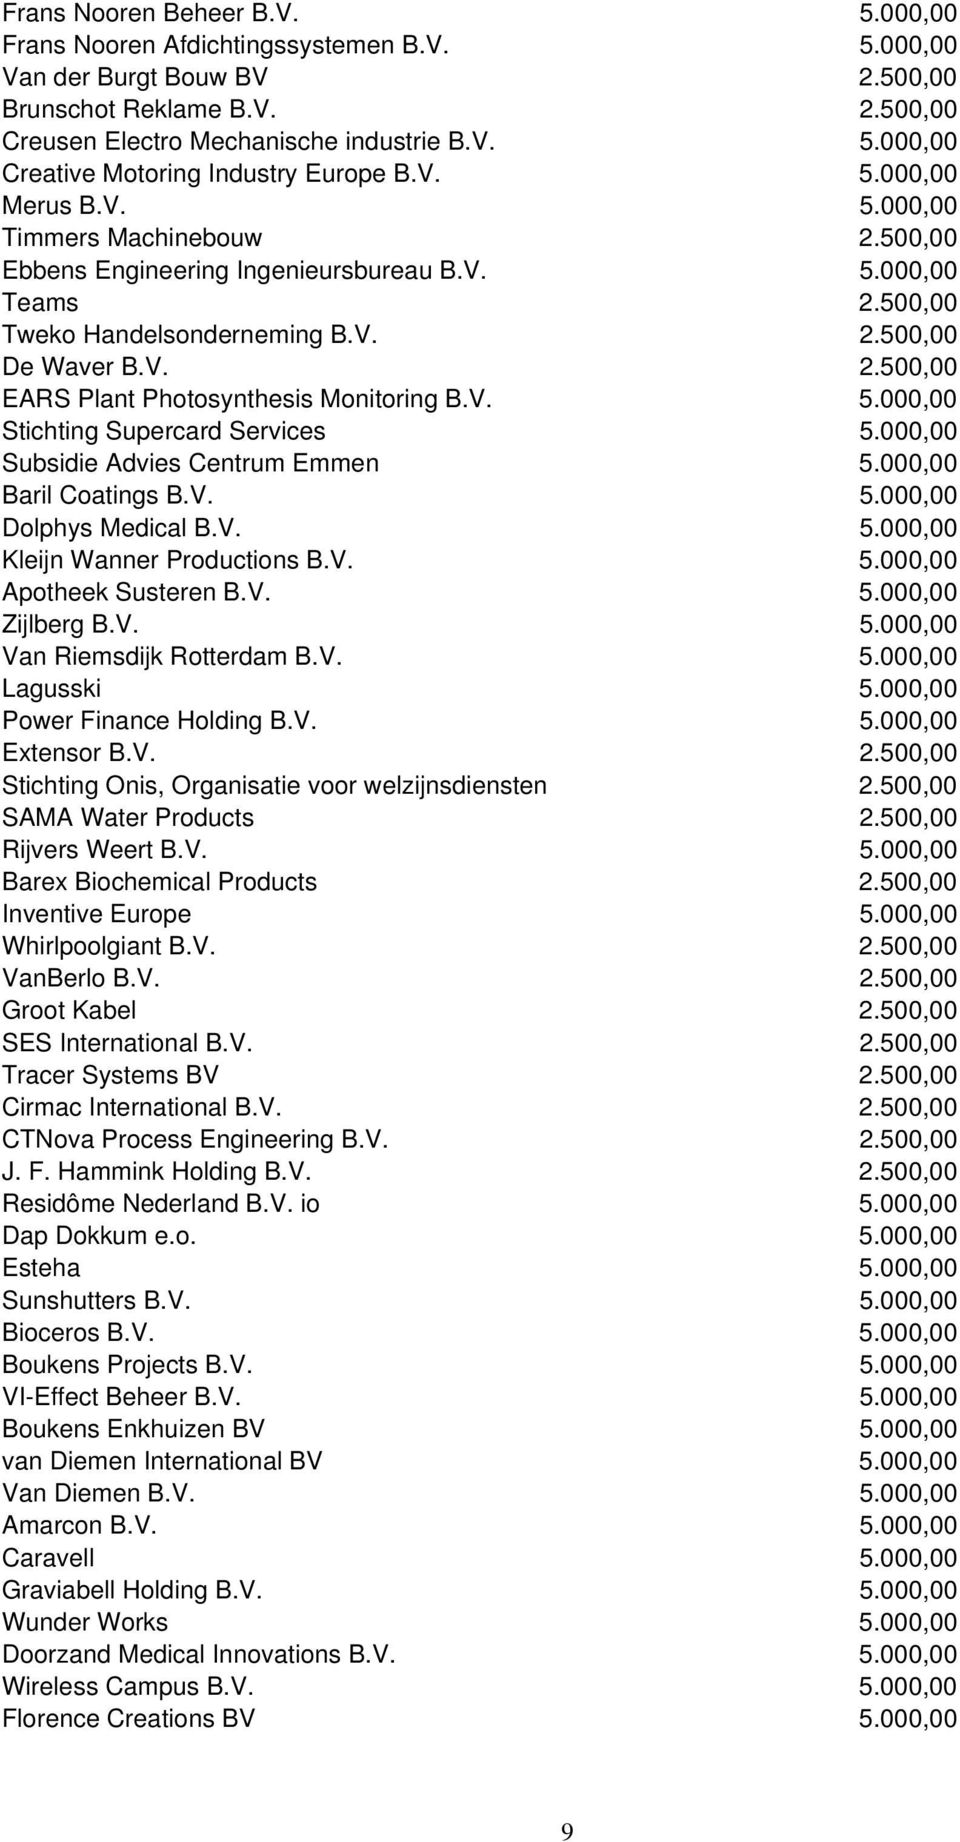 V. 5.000,00 Stichting Supercard Services 5.000,00 Subsidie Advies Centrum Emmen 5.000,00 Baril Coatings B.V. 5.000,00 Dolphys Medical B.V. 5.000,00 Kleijn Wanner Productions B.V. 5.000,00 Apotheek Susteren B.